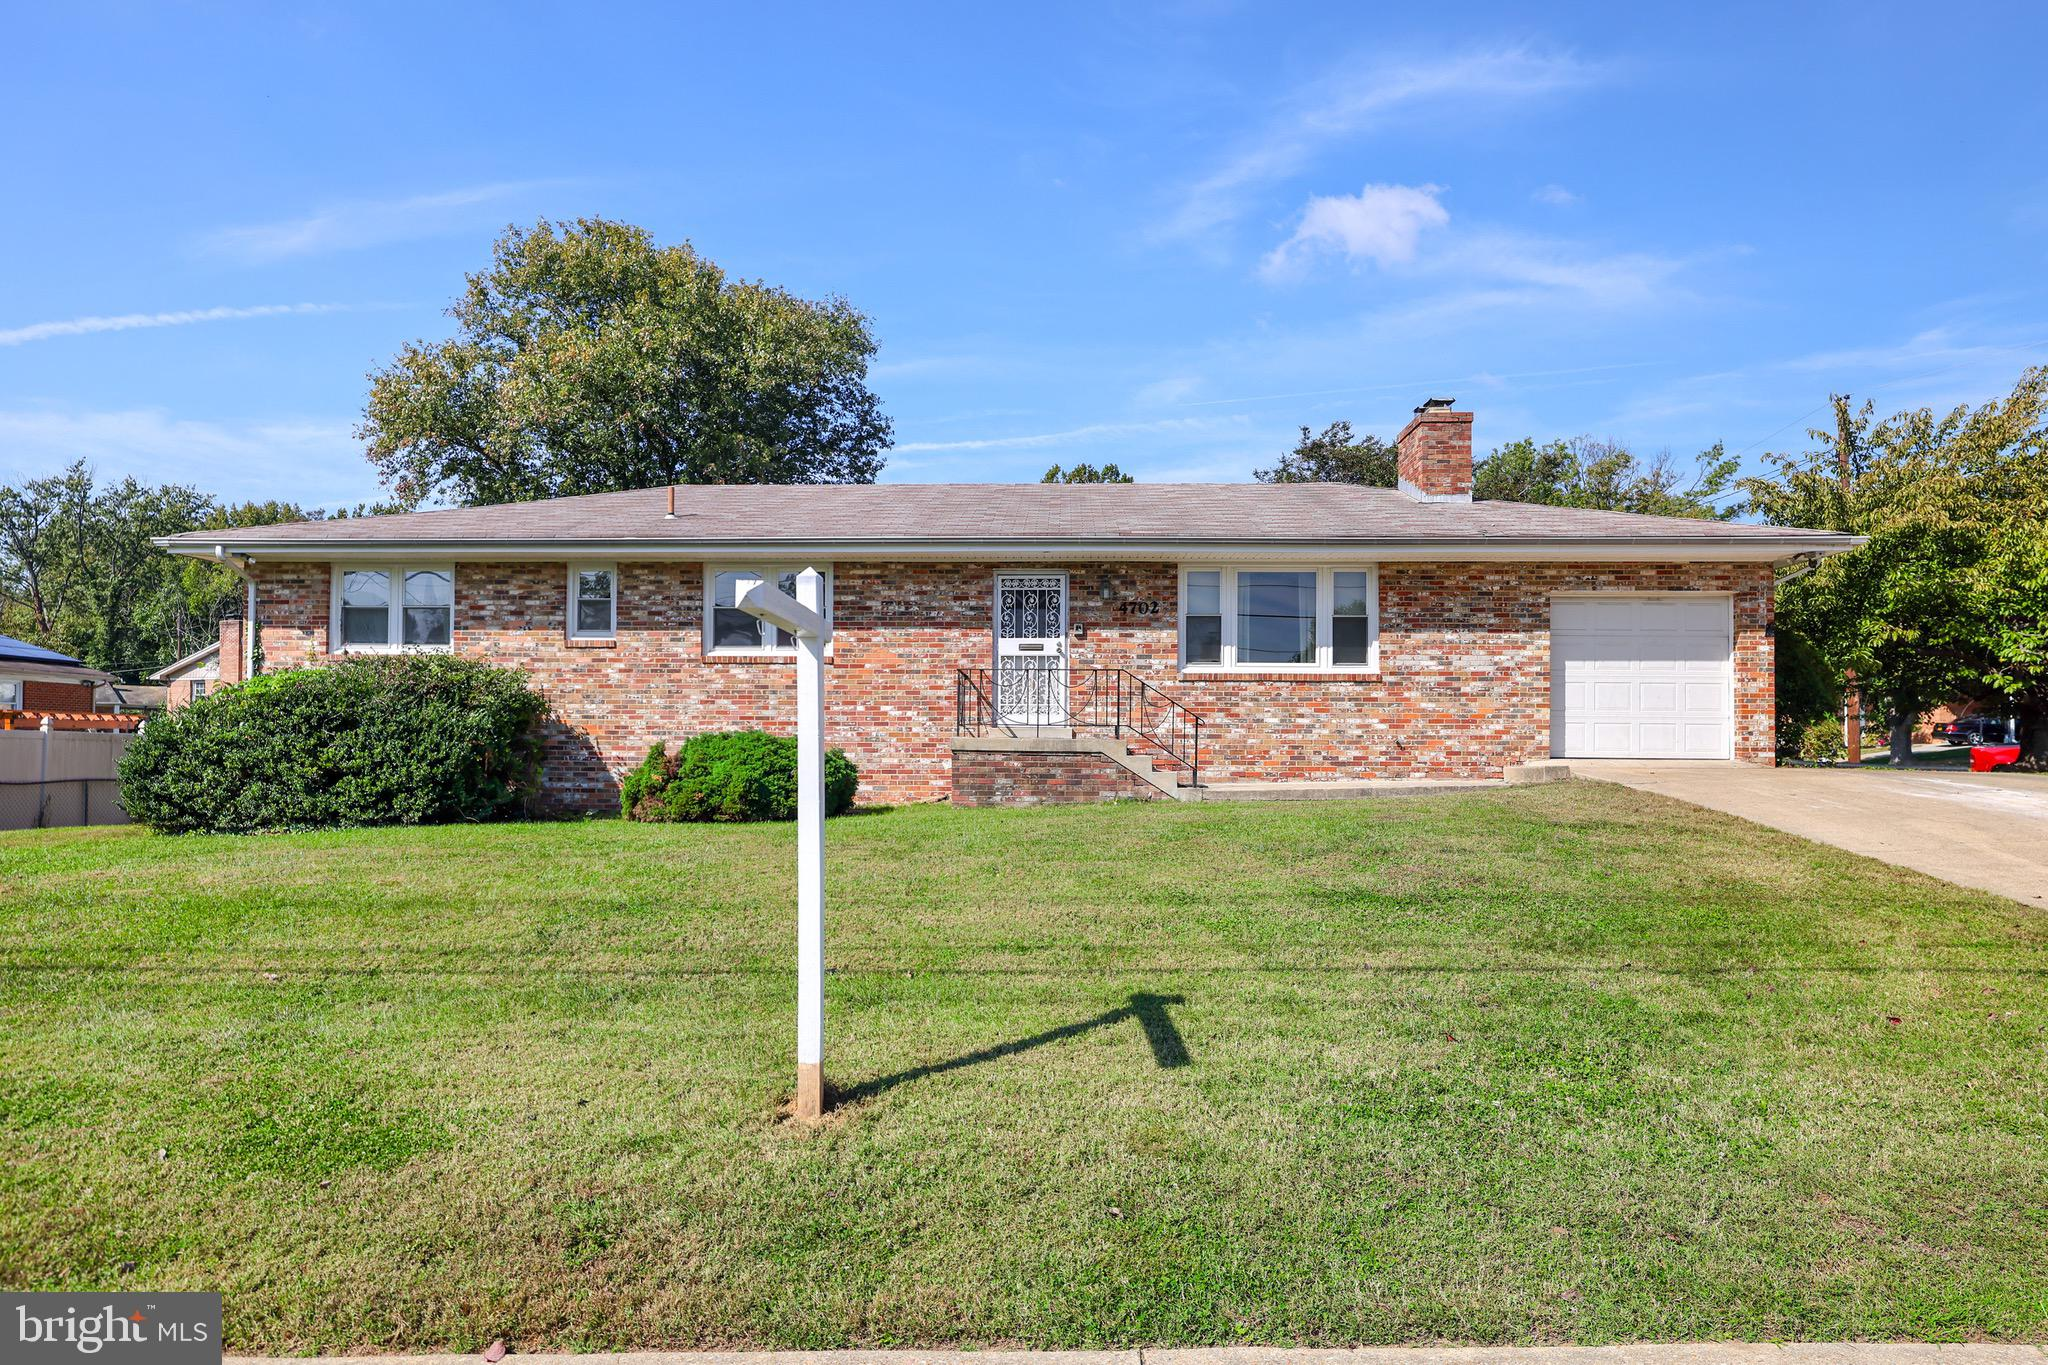 Home with  great bones and endless possibilities. 4 bedrooms 3 baths. Home has unfinished lower leve